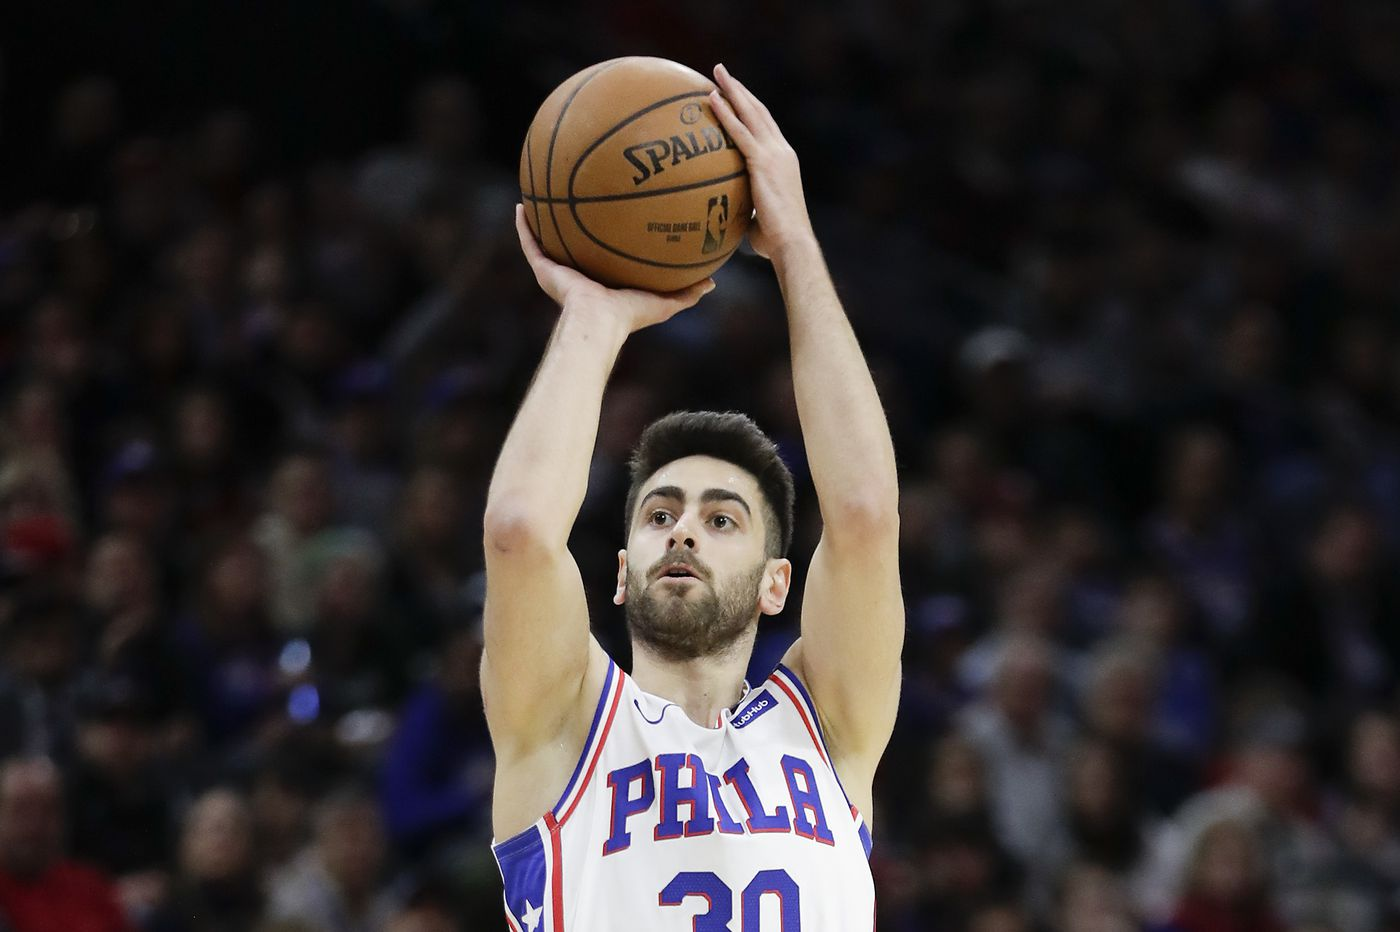 Like the Sixers, Furkan Korkmaz has been good in spurts since the NBA restart. He needs to be better.